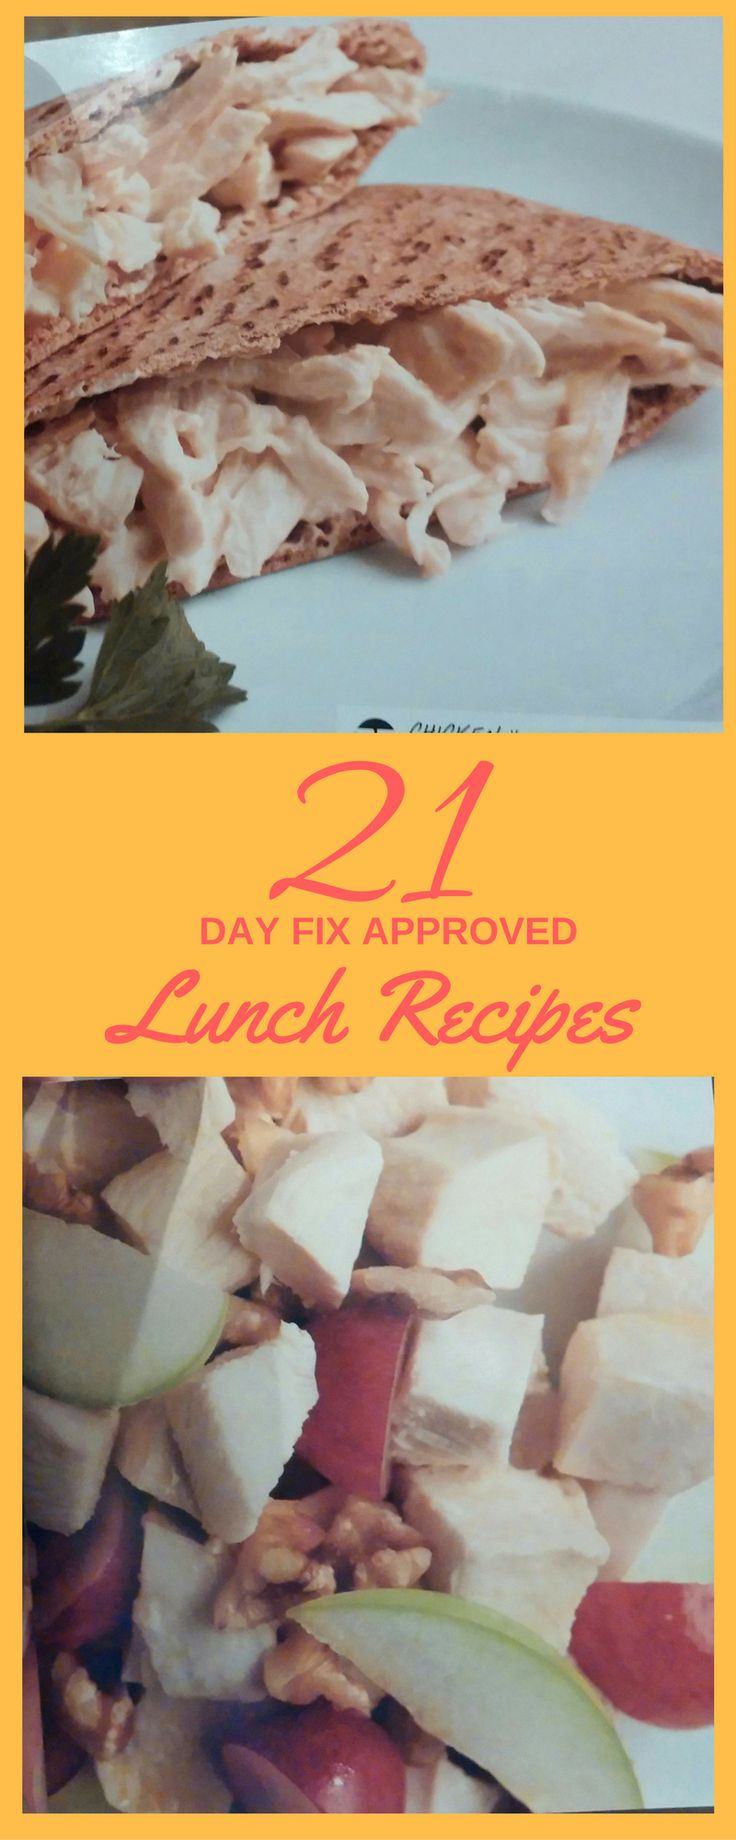 Get FIVE healthy lunch recipes - All 21 Day Fix Approved!  Need help with your meal planning?  This is a good place to start!  Get your 5 day lunch meal plan here! #21dayfix #recipe #healthyrecipe #mealplan #oatmeal #egg #breakfast #healthylifestyle #lunch